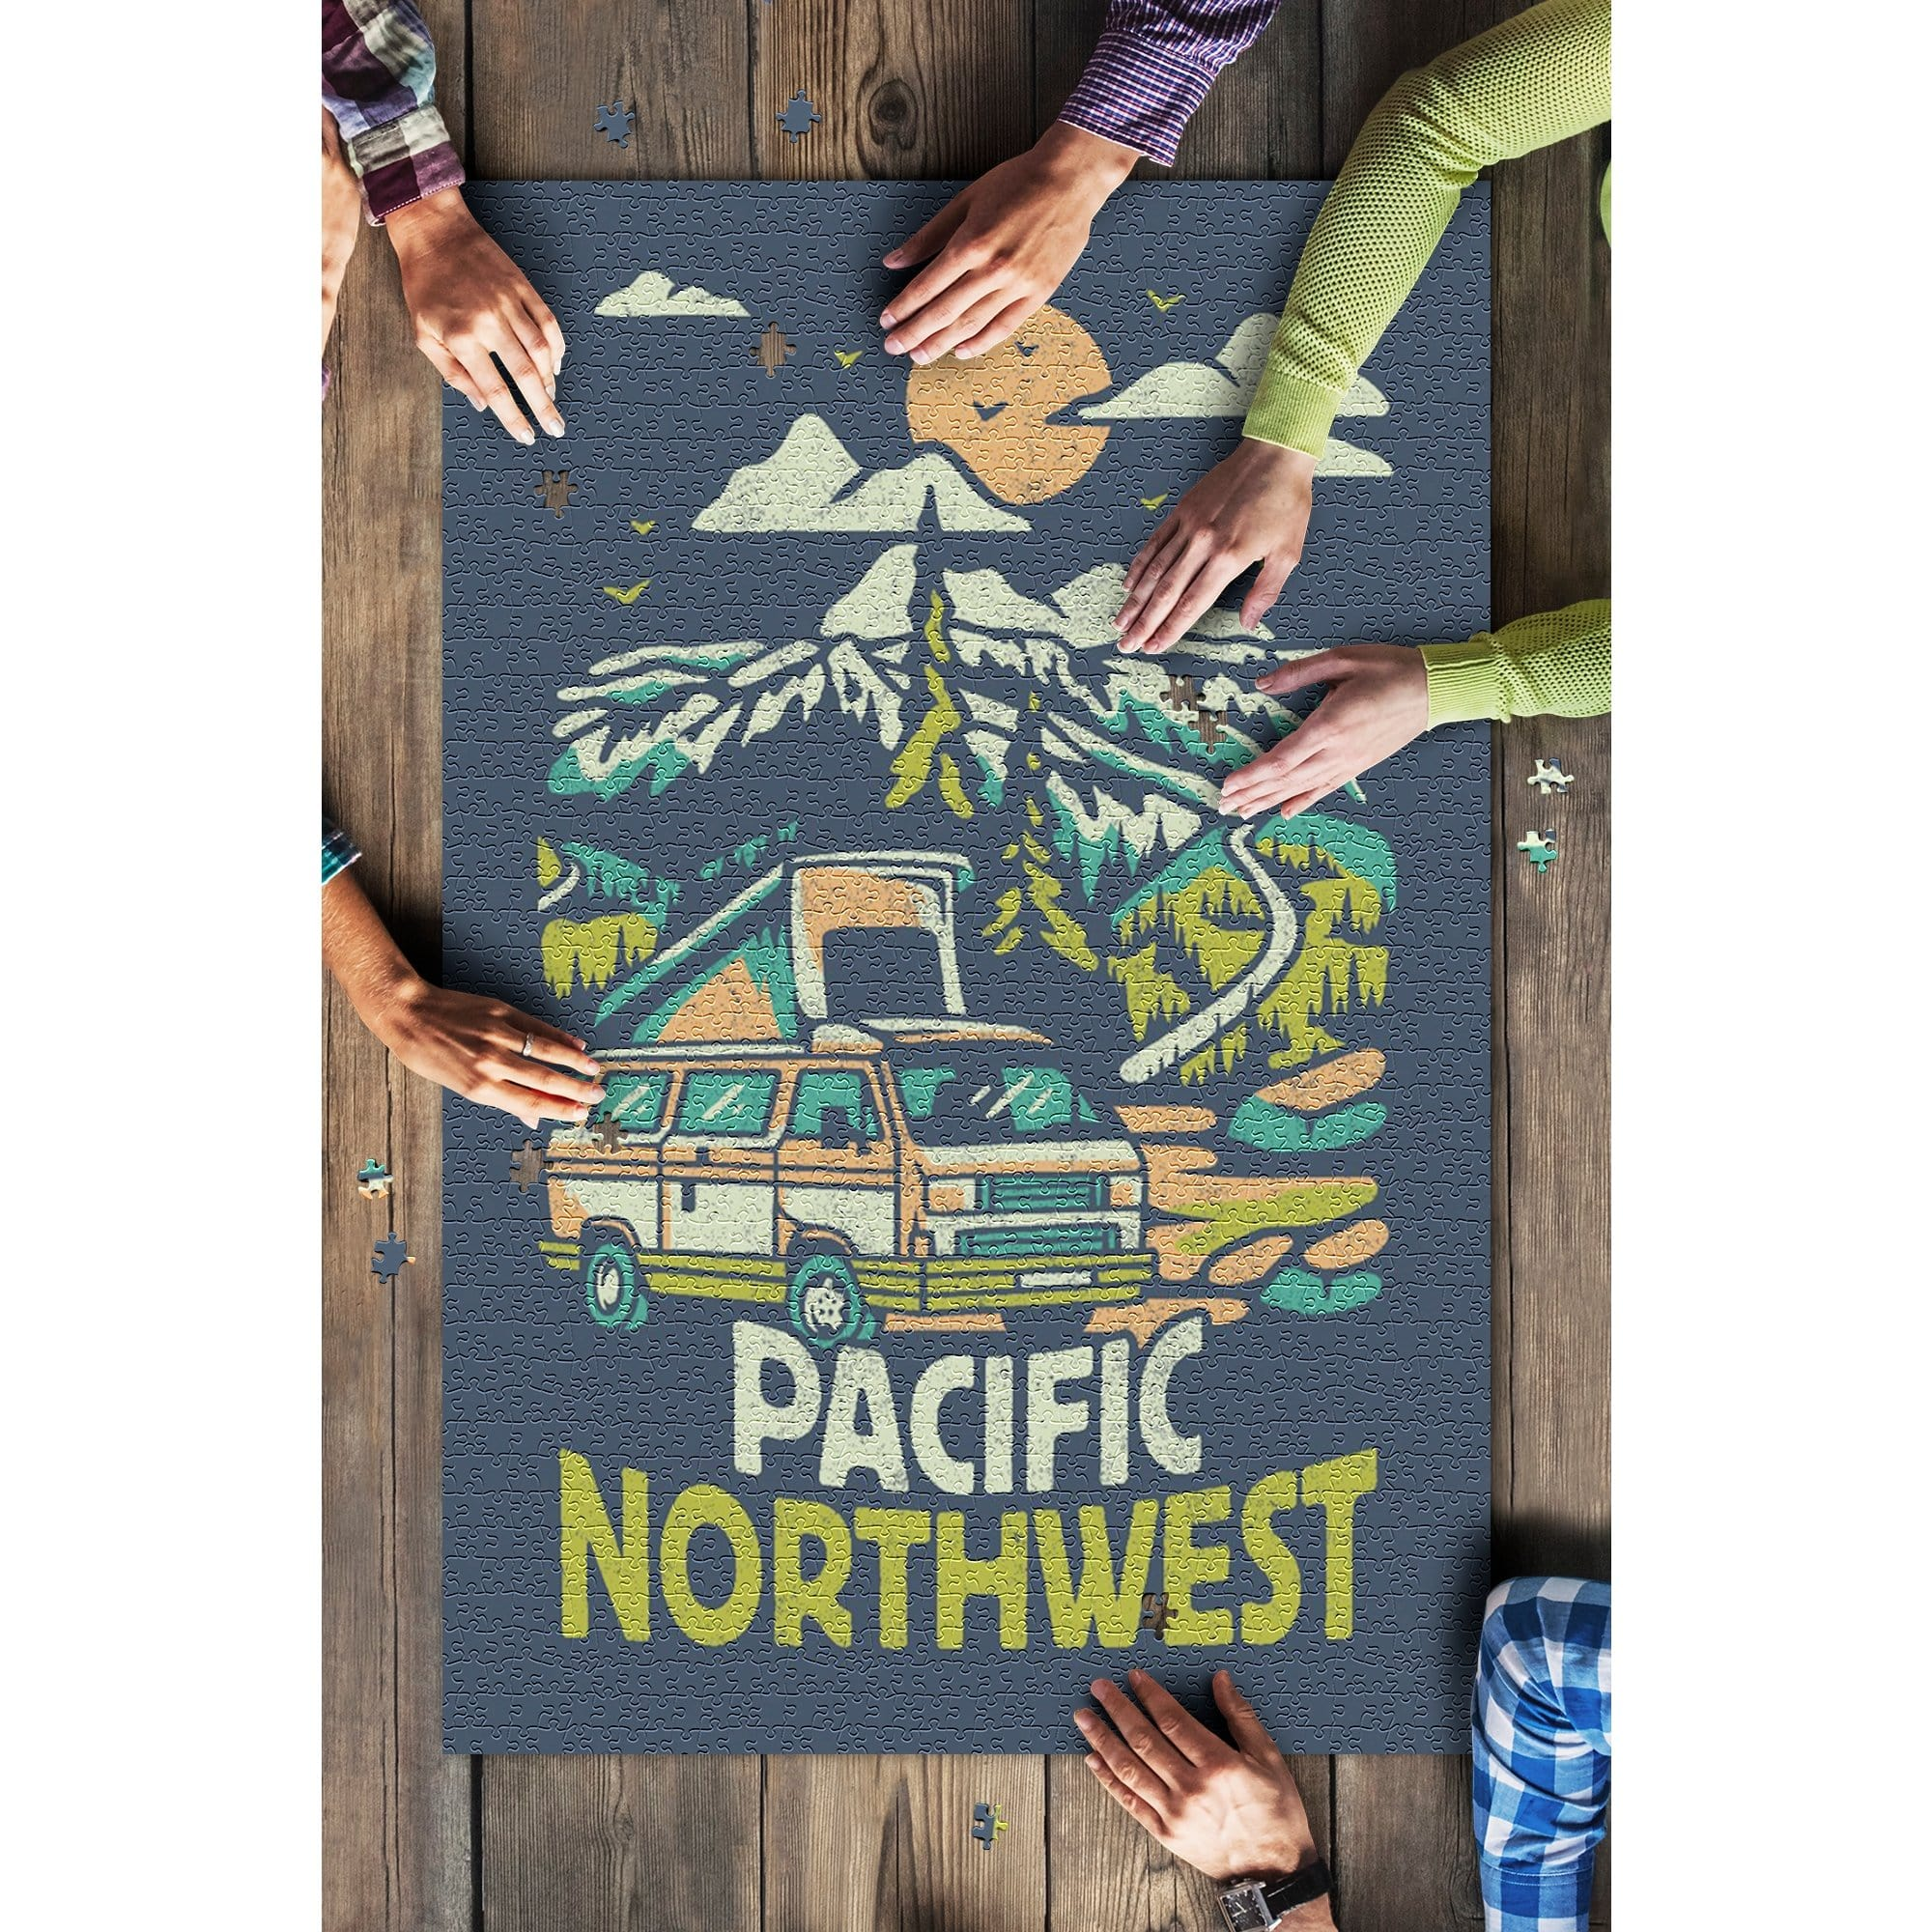 Pacific Northwest, Mountain Scene 1000 Piece Puzzle